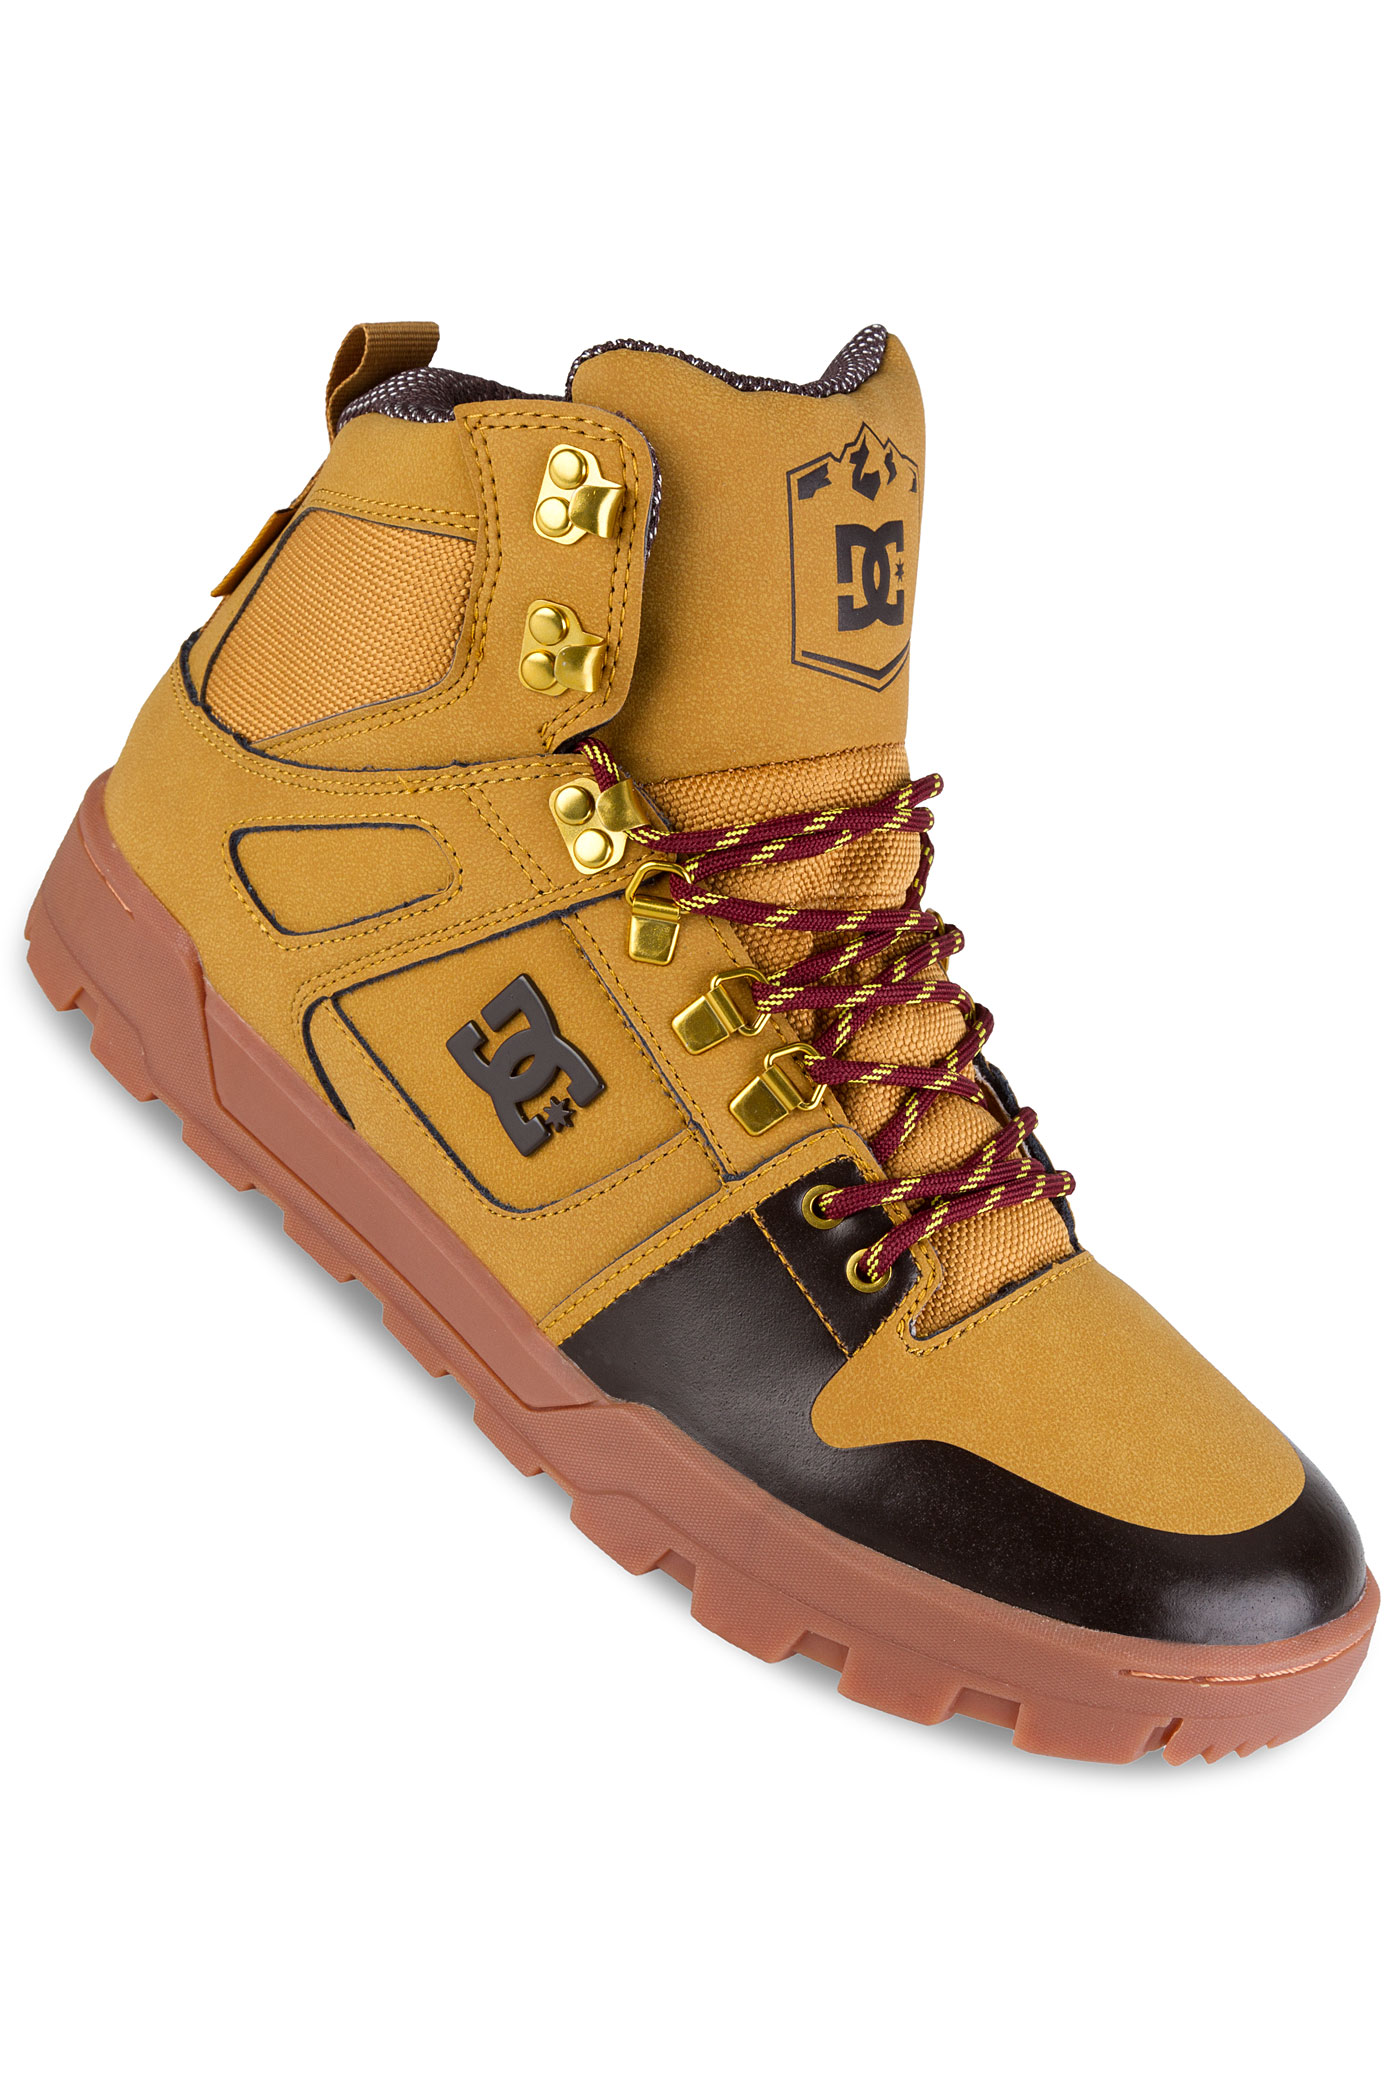 Shoes Spartan High Wr Boot Wheat Turkish